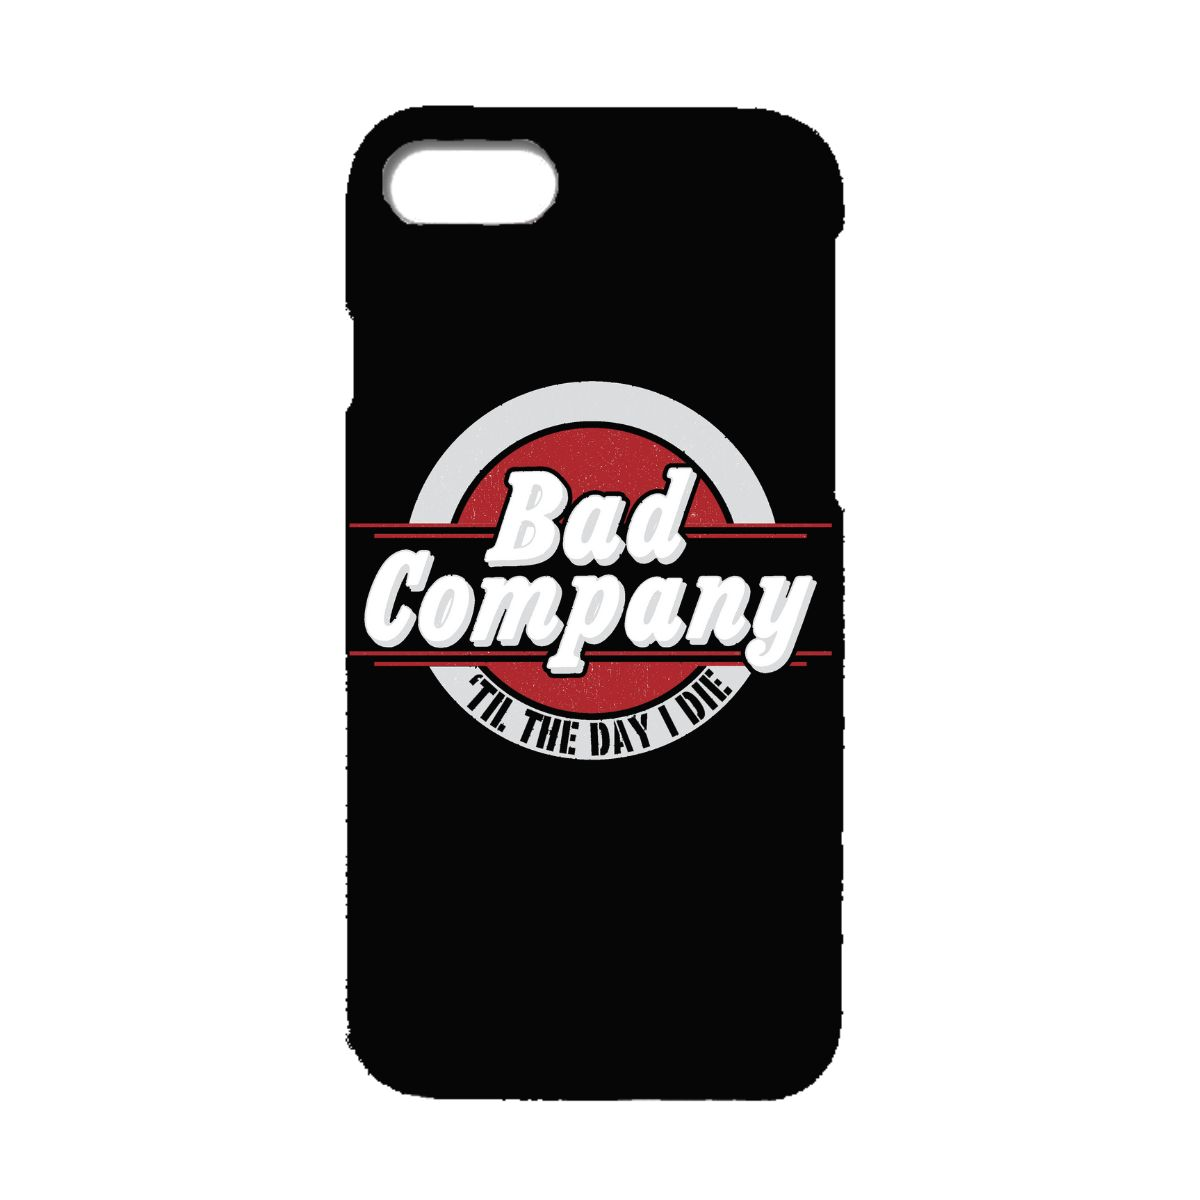 Til The Day I Die Circle Logo Phone Case